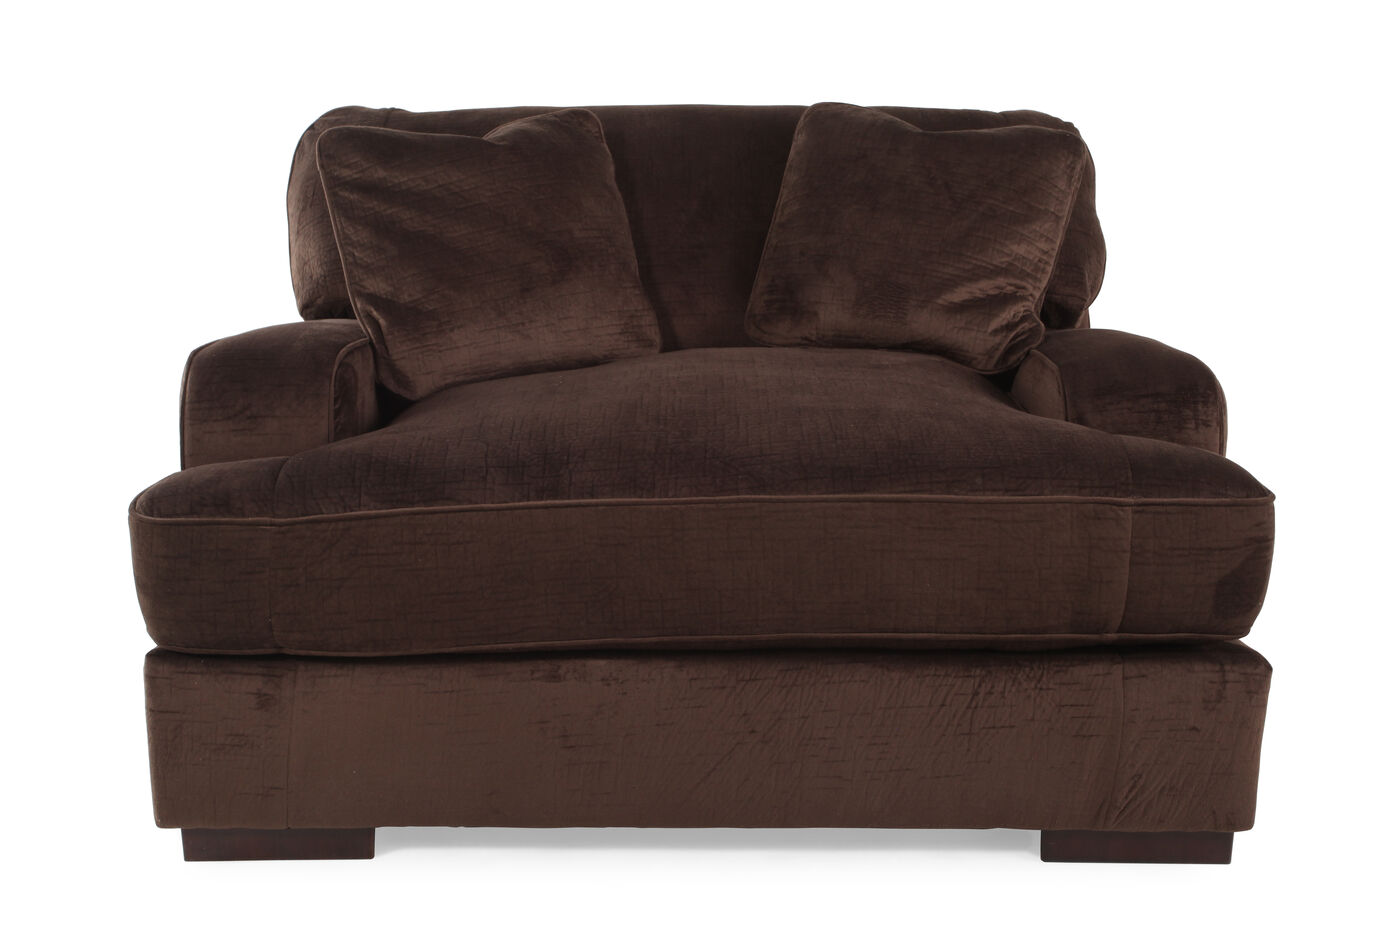 Living Room Chair And A Half. Textured Microfiber 57 quot  Chair and a Half in Dark Chocolate